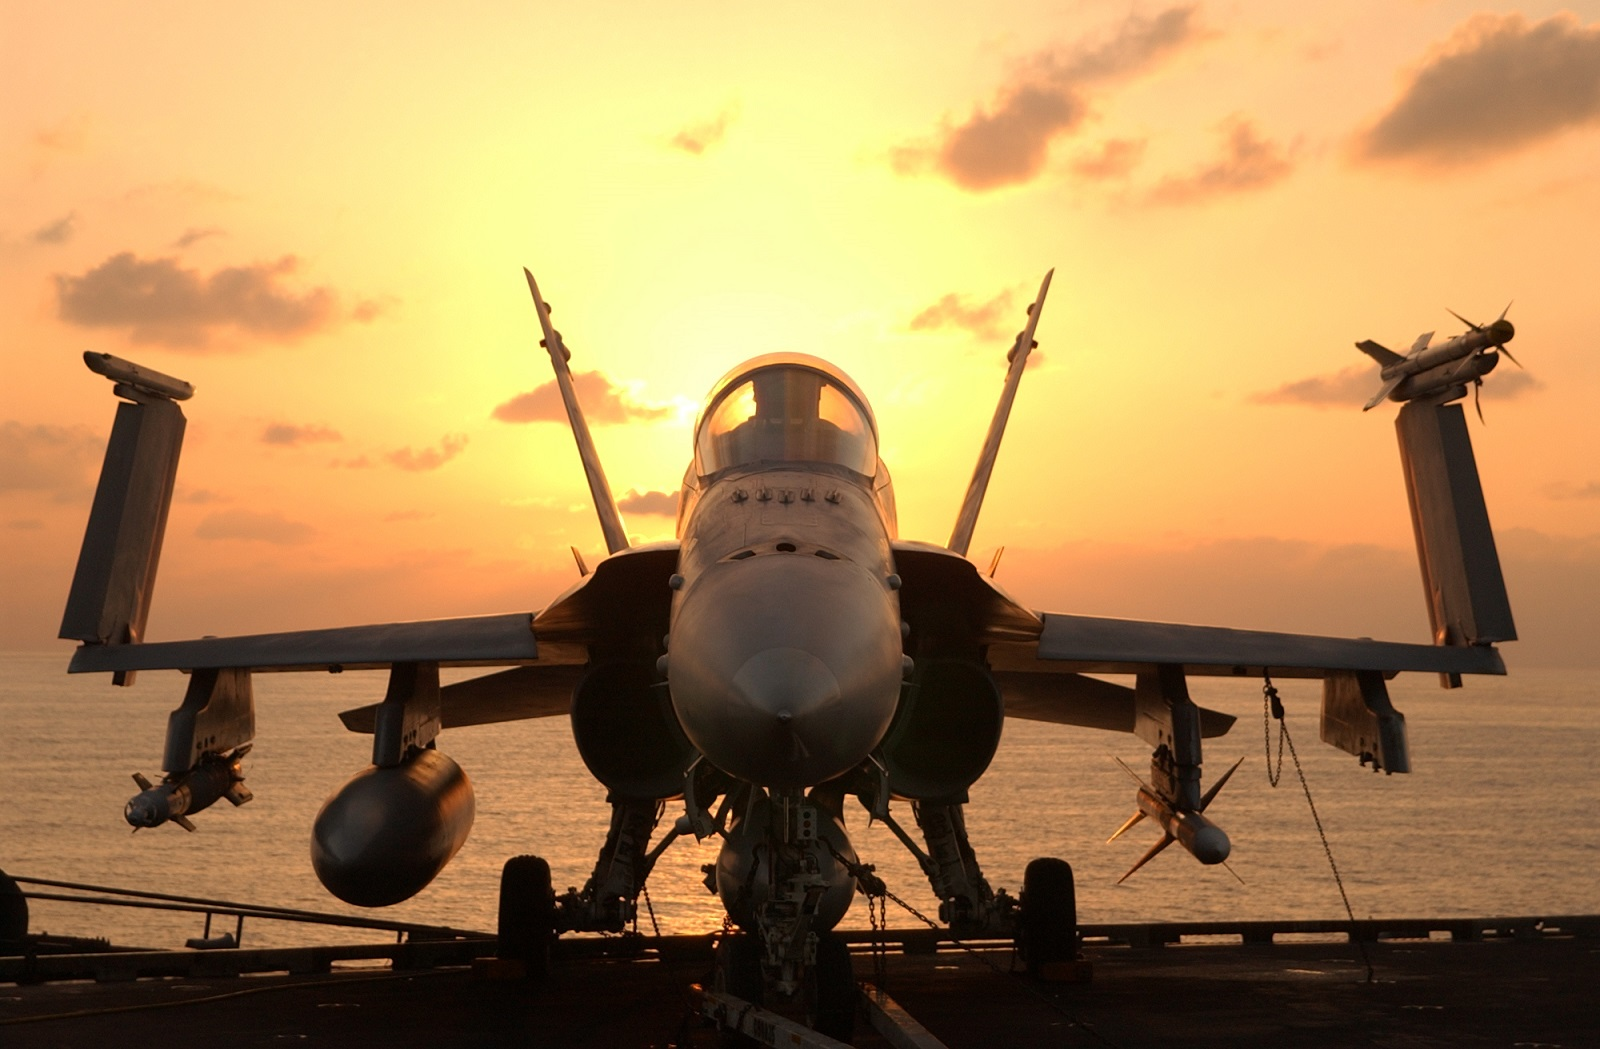 Coming to India's Aircraft Carriers: America's F/A-18 Super Hornet?